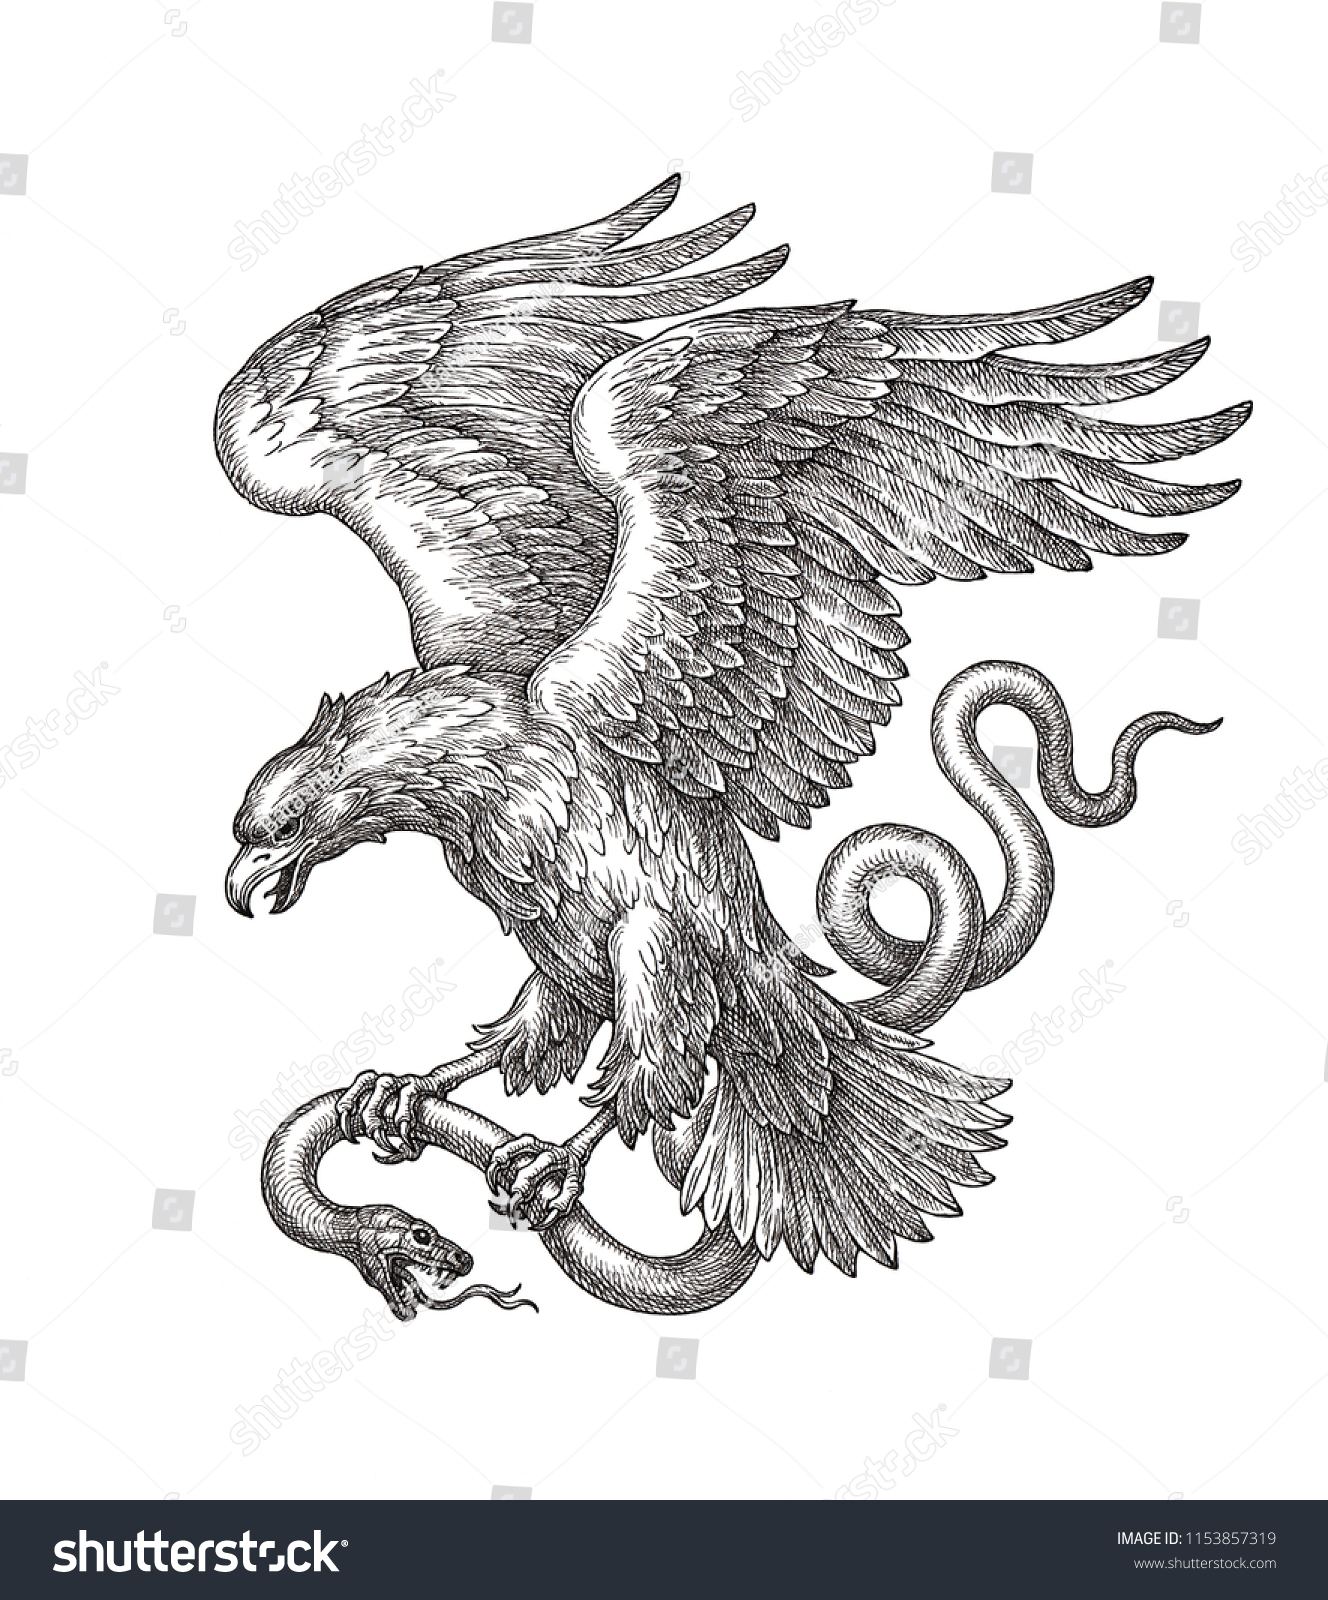 Original hand drawn black and white illustration flying eagle with a snake in claws